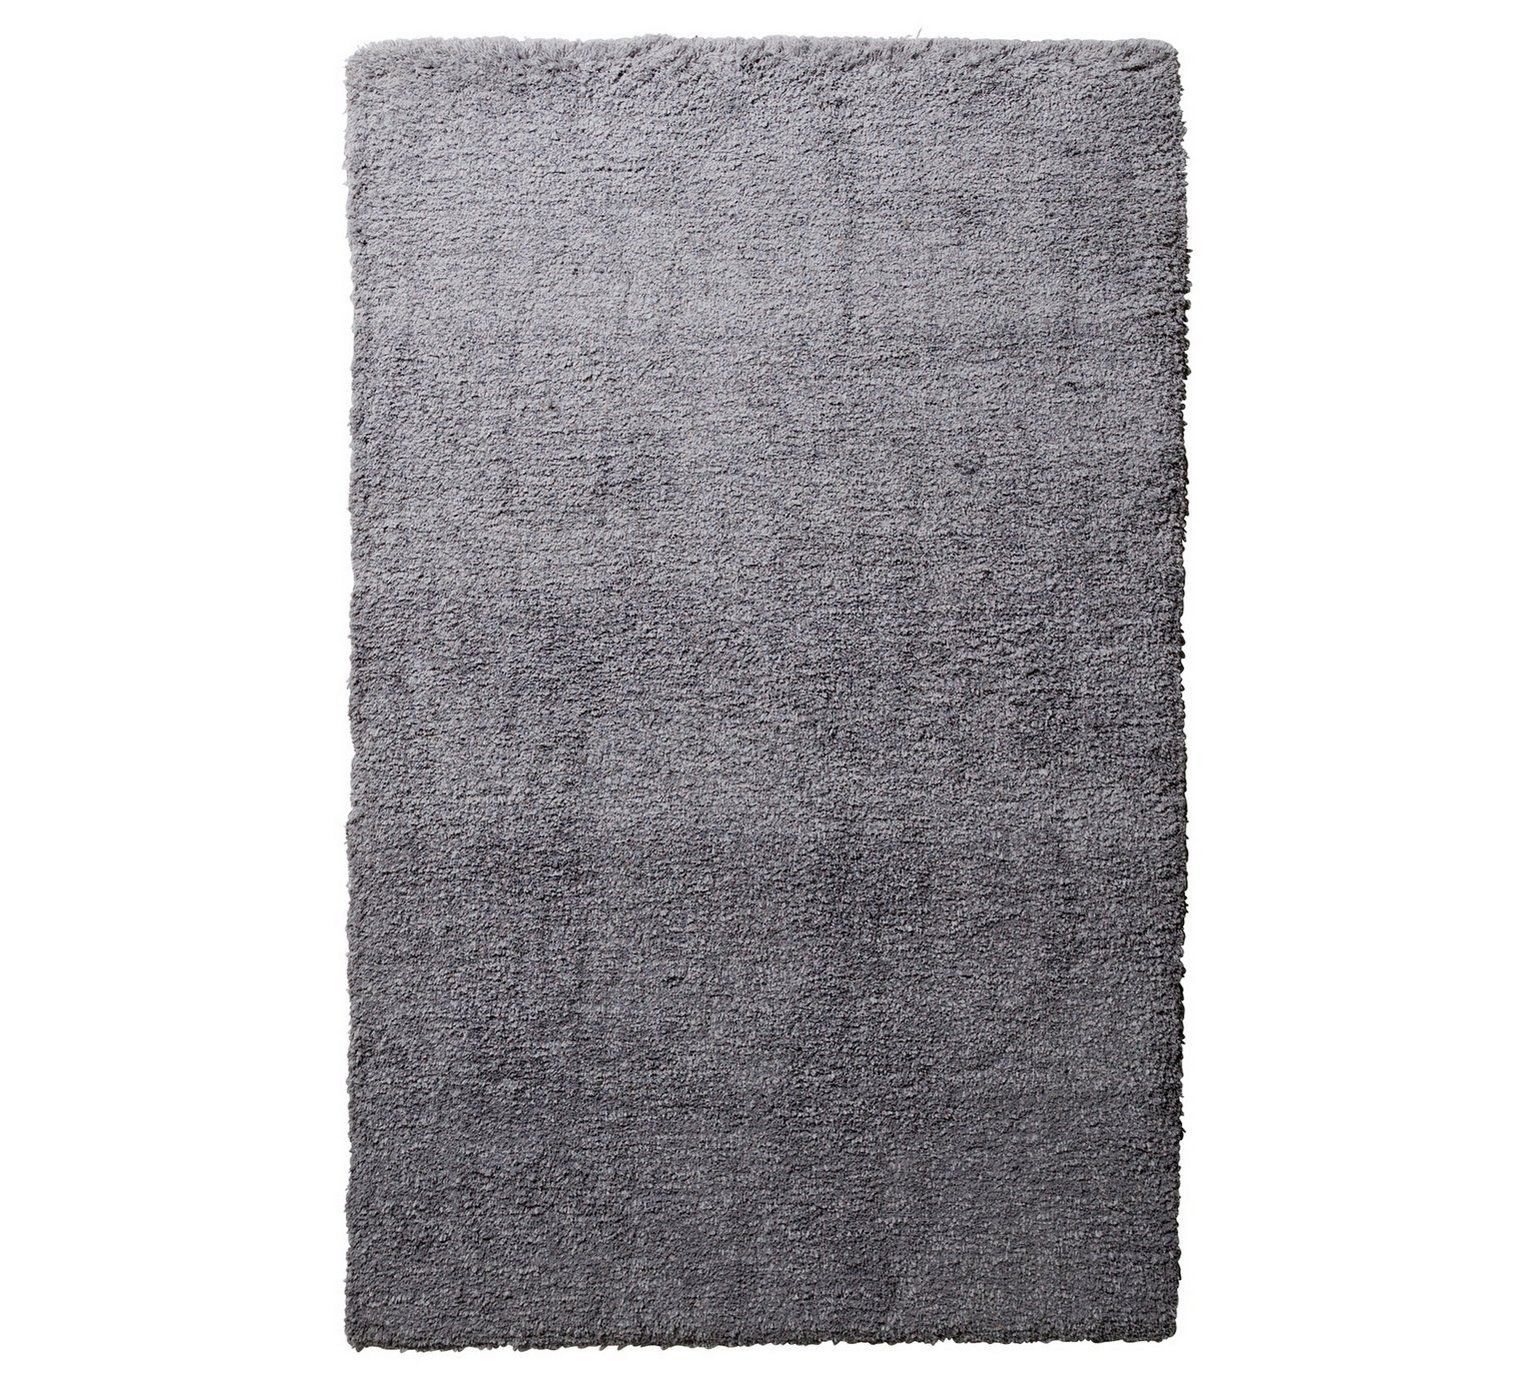 Buy Collection Ombre Supersoft Shaggy Rug 170x110cm Grey At Argos Co Uk Your Online Shop For Rugs And Mats Home Furnishing Shaggy Rug Rugs Rugs And Mats